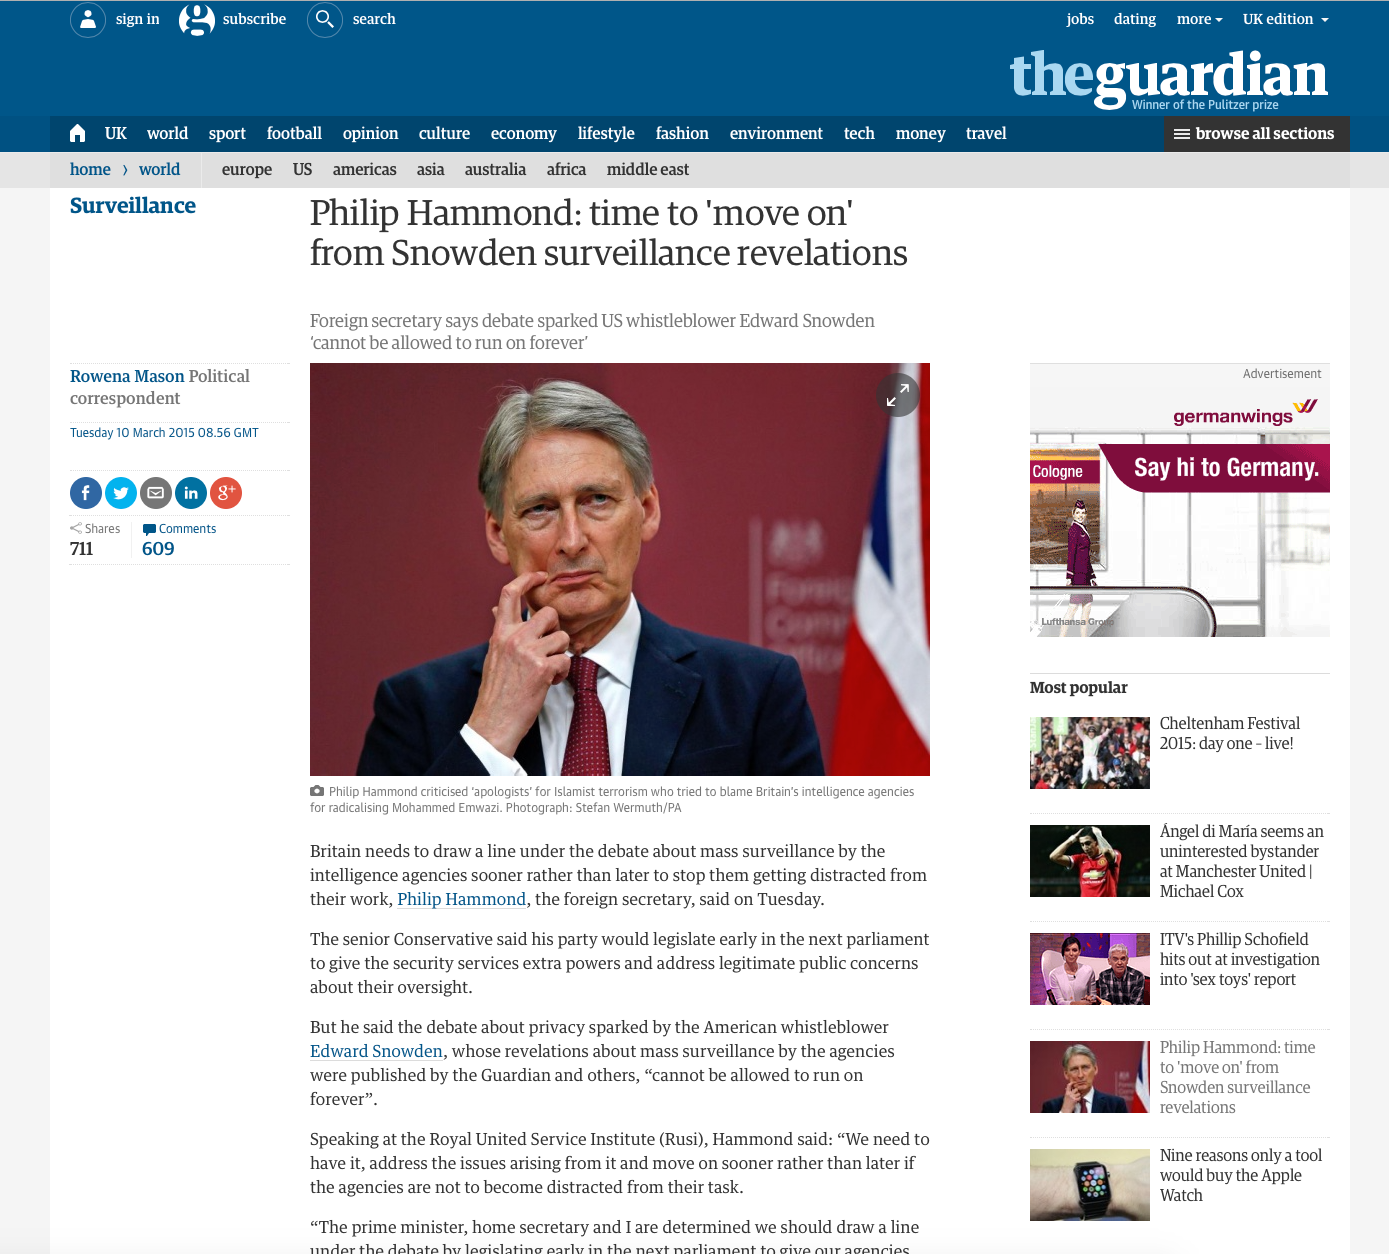 The Guardian's article page has prioritised an Ad unit to ensure it's 100% viewability.